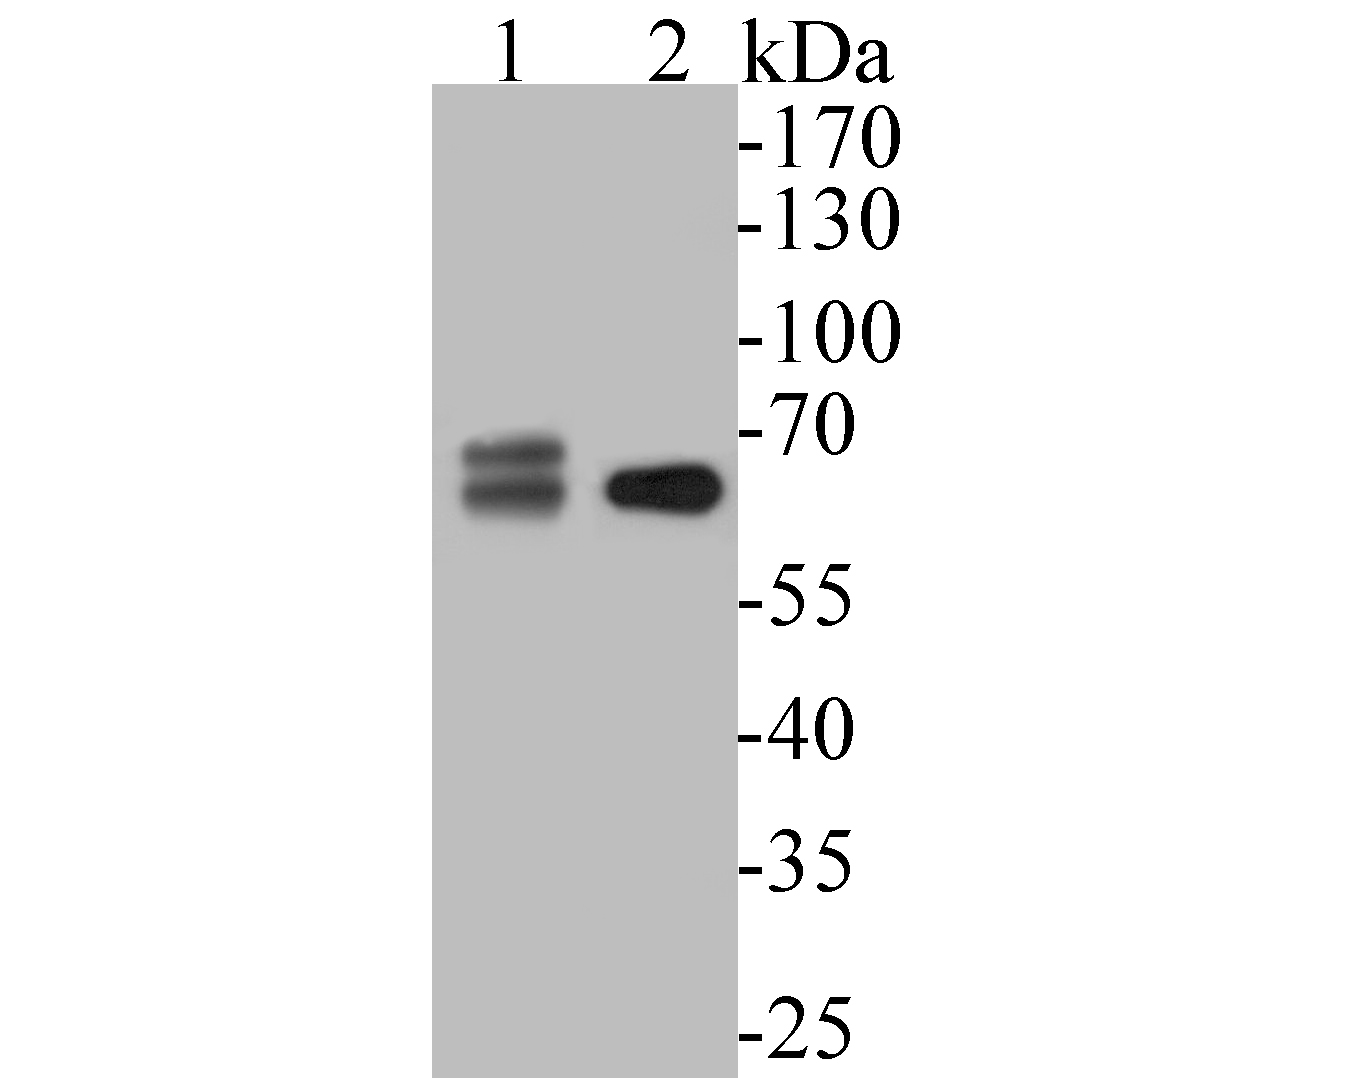 Western blot analysis of SPAK on different lysates. Proteins were transferred to a PVDF membrane and blocked with 5% BSA in PBS for 1 hour at room temperature. The primary antibody (ET7110-37, 1/500) was used in 5% BSA at room temperature for 2 hours. Goat Anti-Rabbit IgG - HRP Secondary Antibody (HA1001) at 1:5,000 dilution was used for 1 hour at room temperature.<br /> Positive control: <br /> Lane 1: Jurkat cell lysate<br /> Lane 2: HepG2 cell lysate